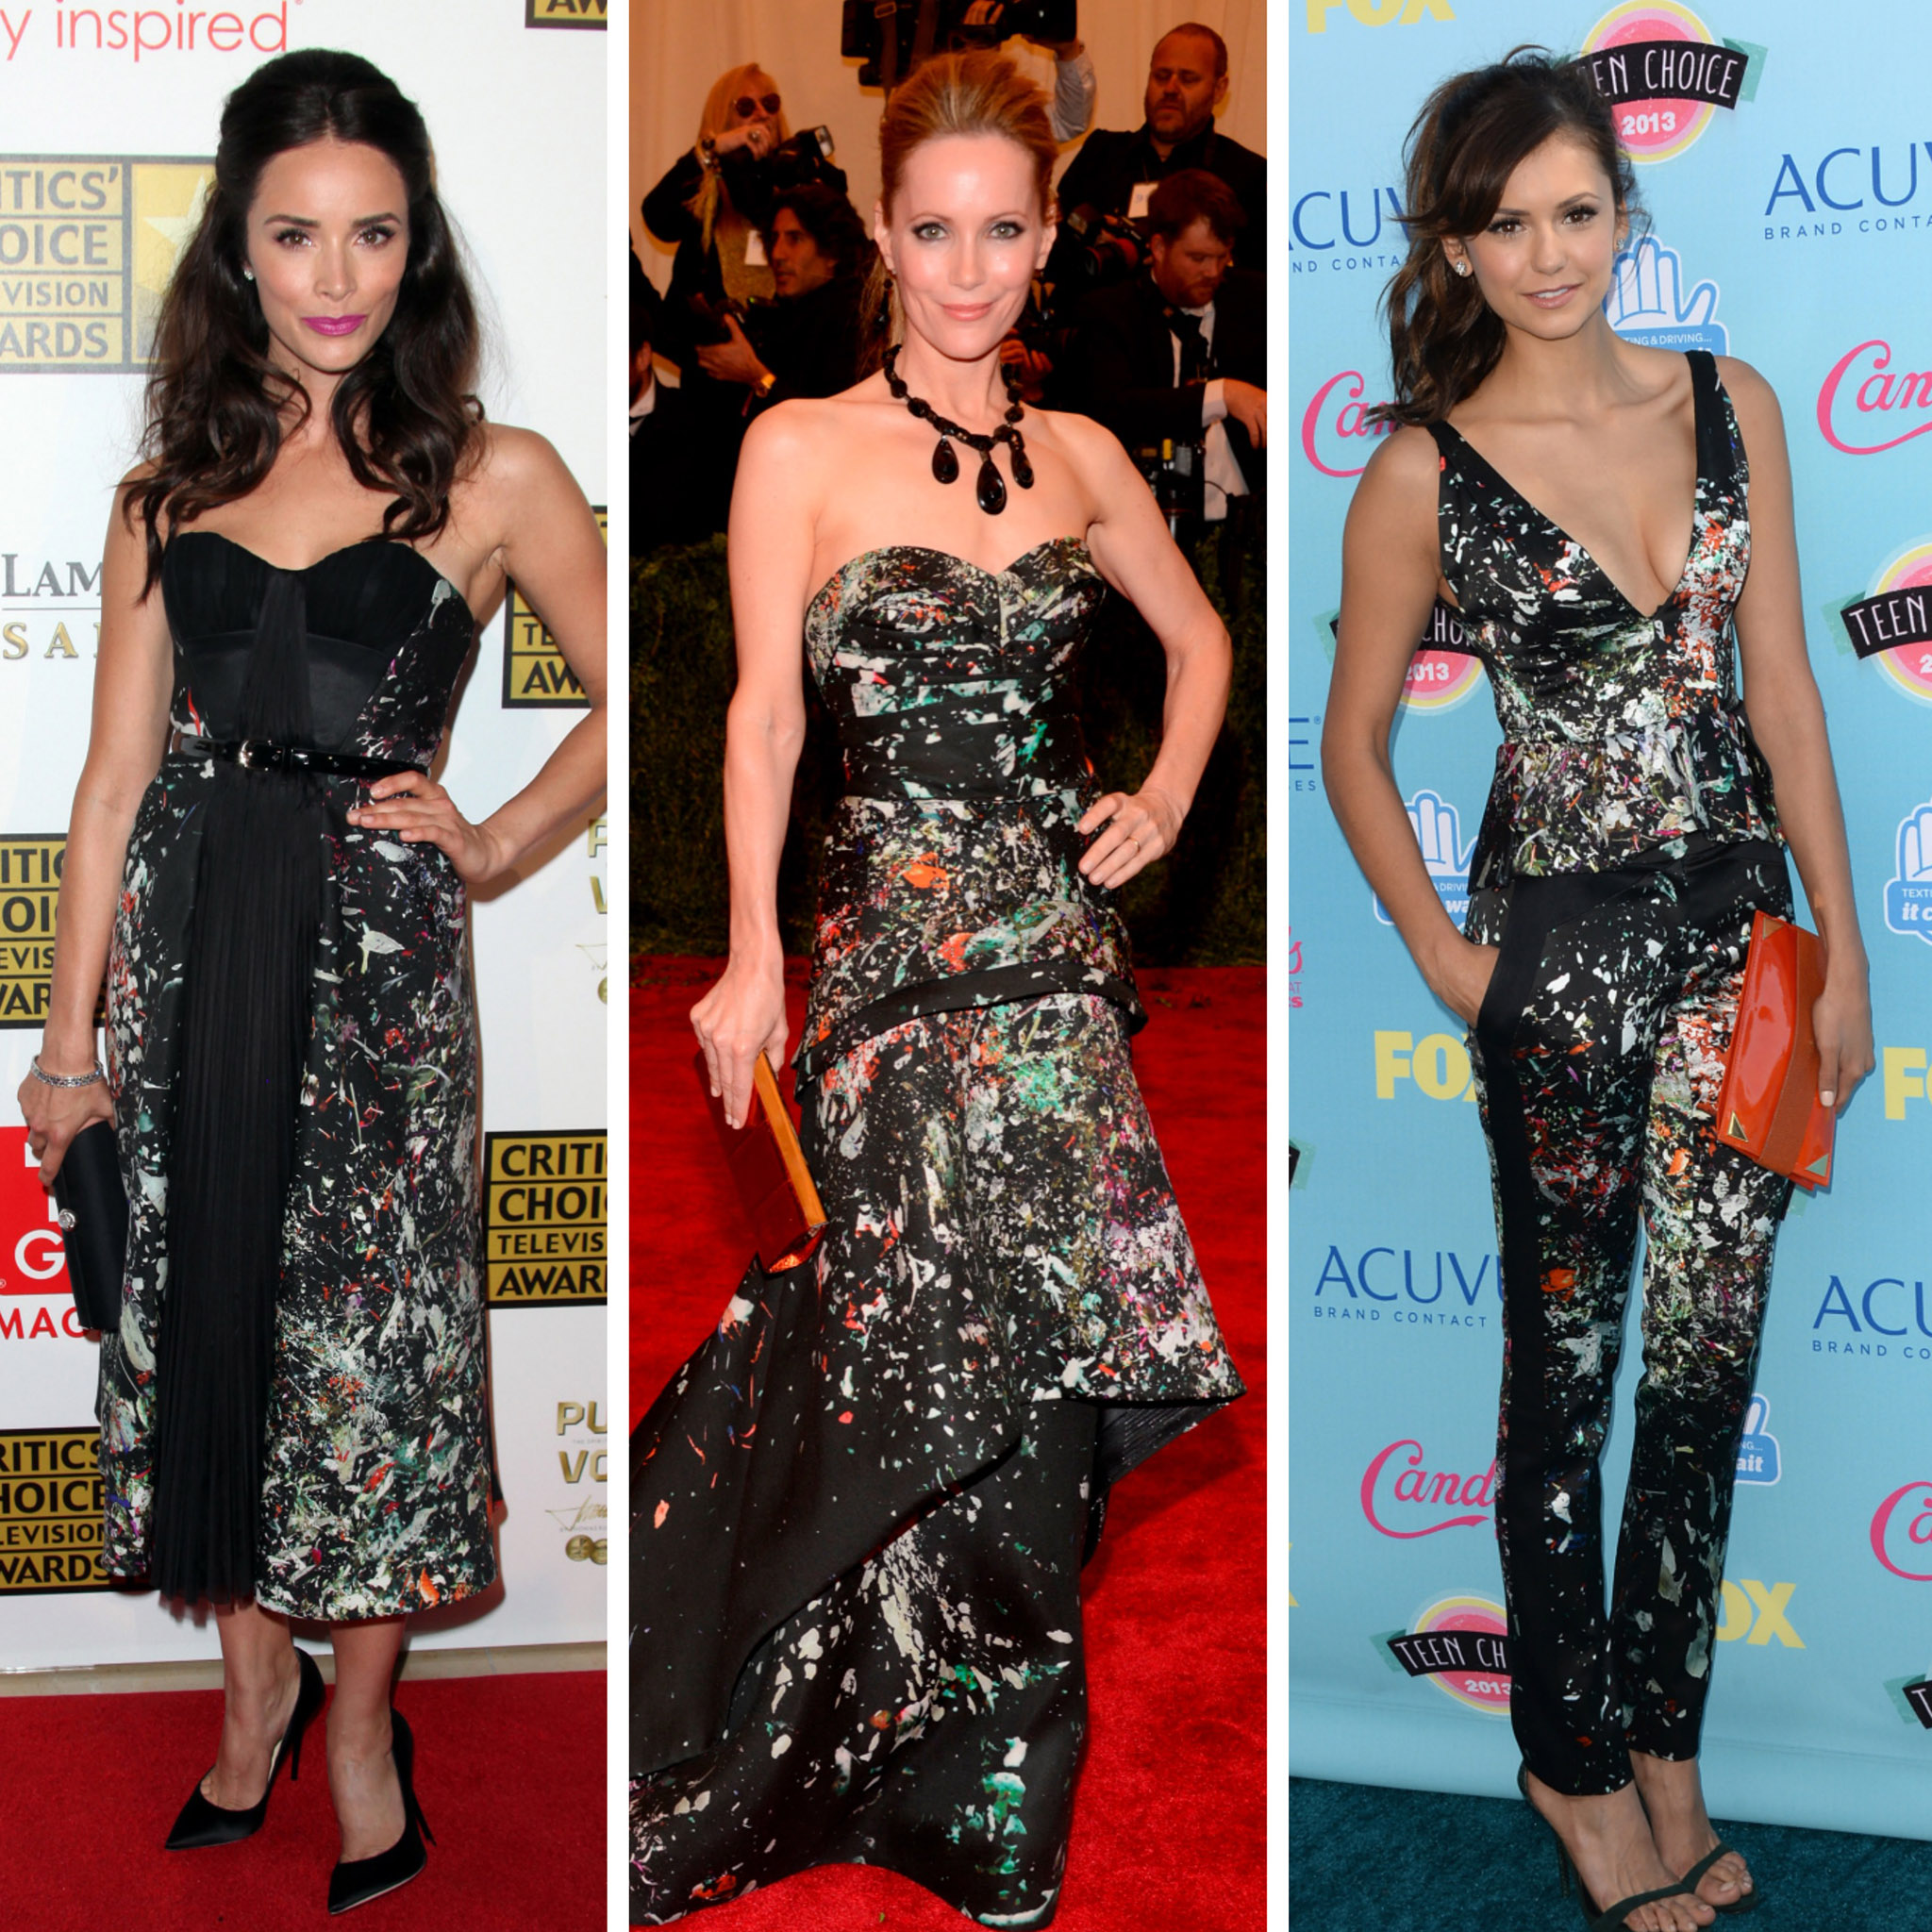 (L-R) Abigail Spencer, Leslie Mann, Nina Dobrev (Getty Images)